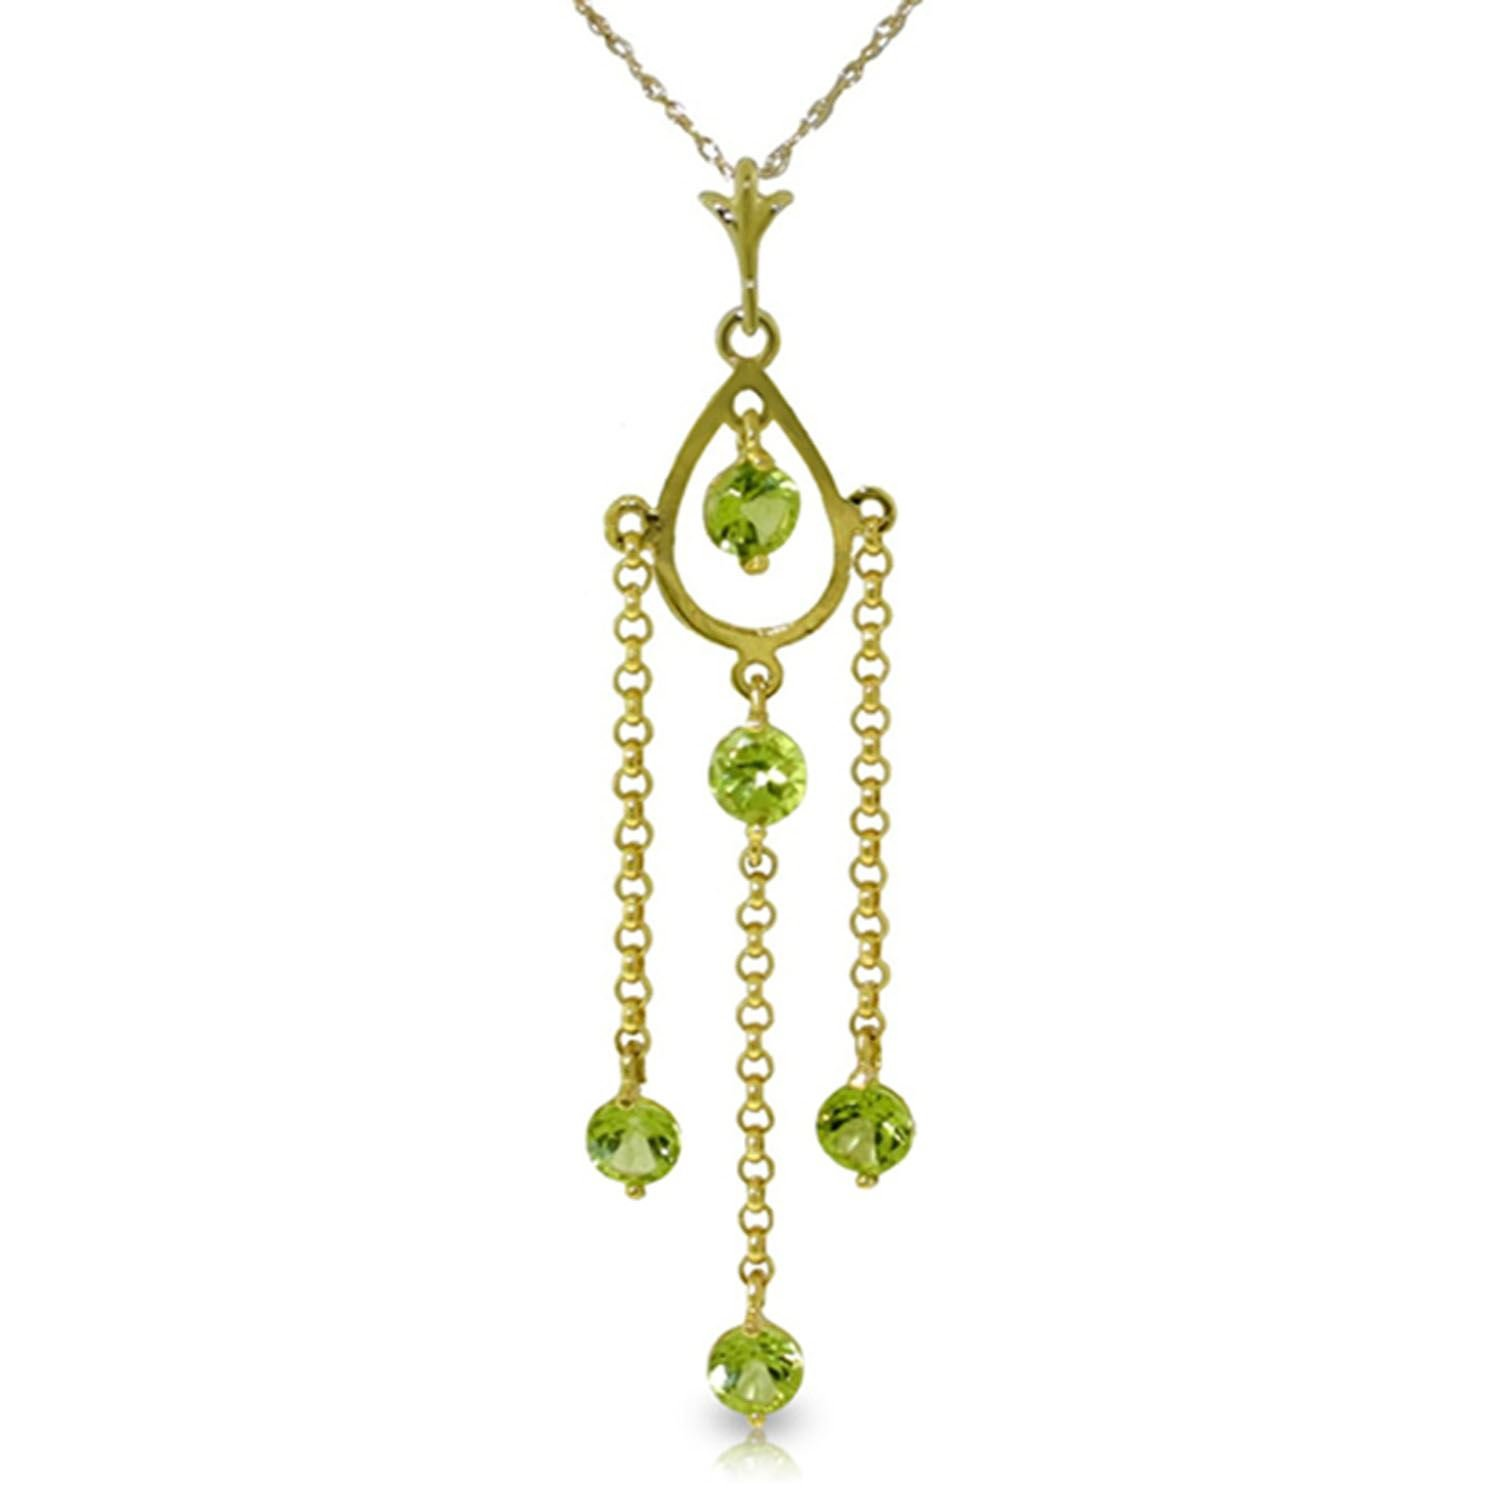 ALARRI 1.5 CTW 14K Solid Gold O Love Peridot Necklace with 22 Inch Chain Length by ALARRI (Image #1)